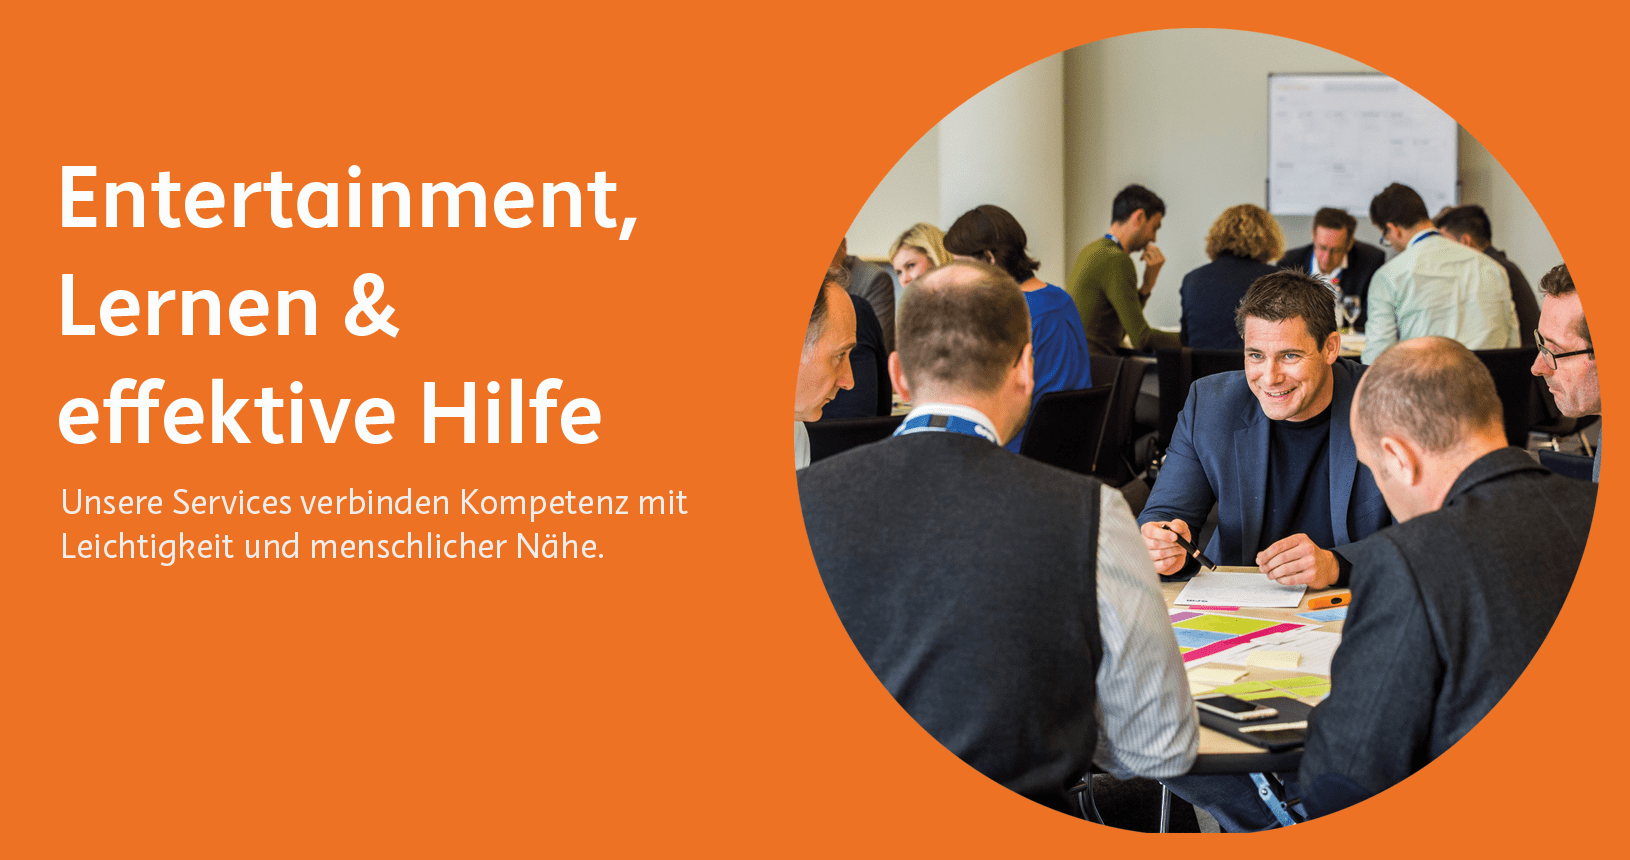 Project Management, Entertainment, Lernen, Effektive Hilfe